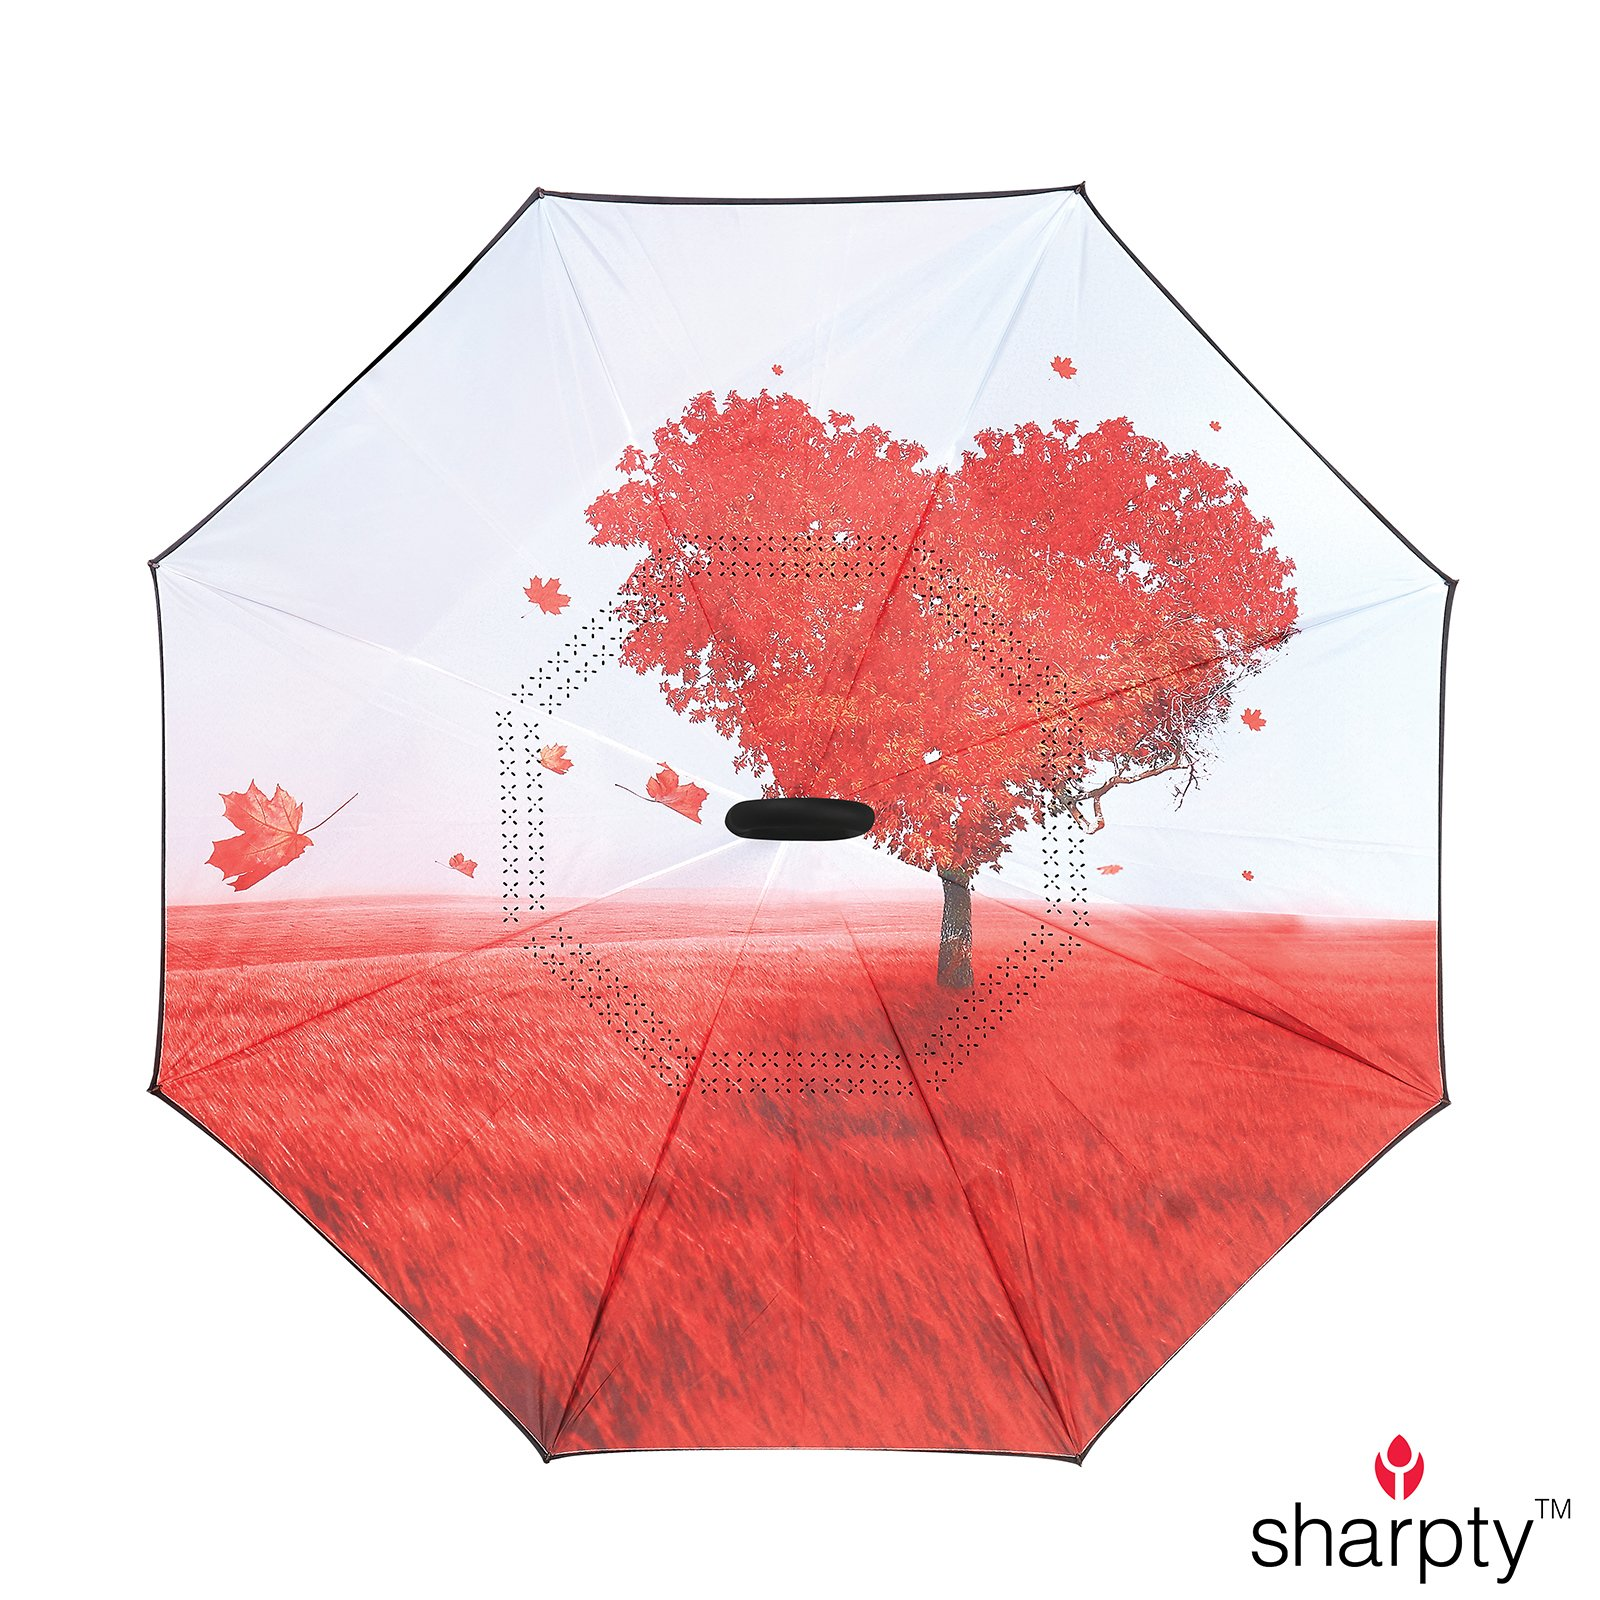 Sharpty Inverted Umbrella, Umbrella Windproof, Reverse Umbrella, Umbrellas for Women with UV Protection, Upside Down Umbrella With C-Shaped Handle (Love Tree) by Sharpty (Image #2)